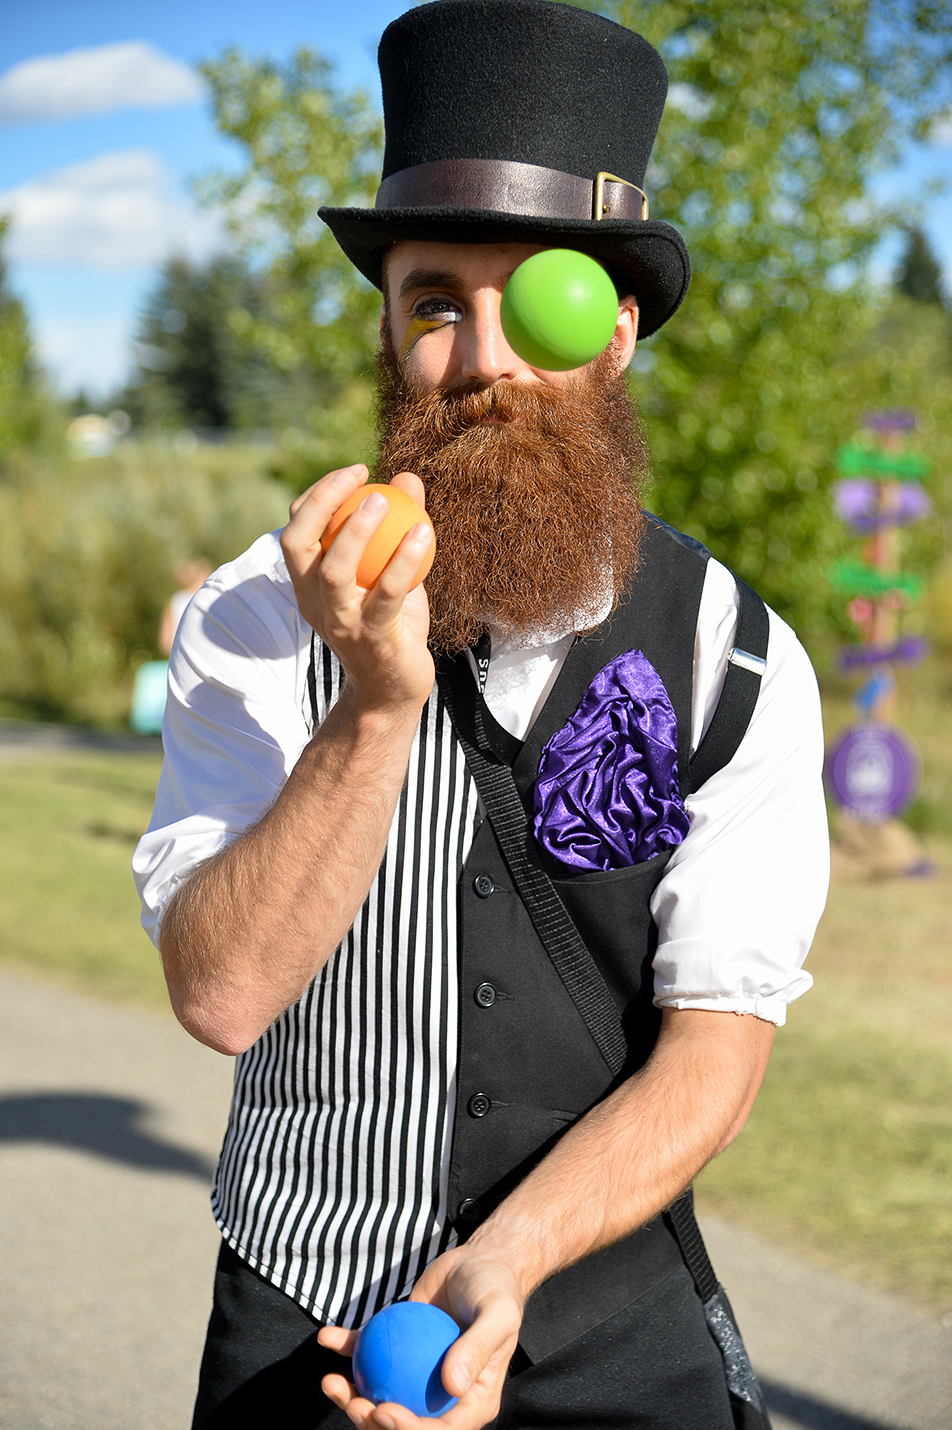 Eye on the Ball: Michael Bartz juggles during the Circle The Wagons event at University District South Park in Calgary. Bartz is a performer in the circus group, Cirque De La Nuit. (Photo by Ashley Orzel/The Press)